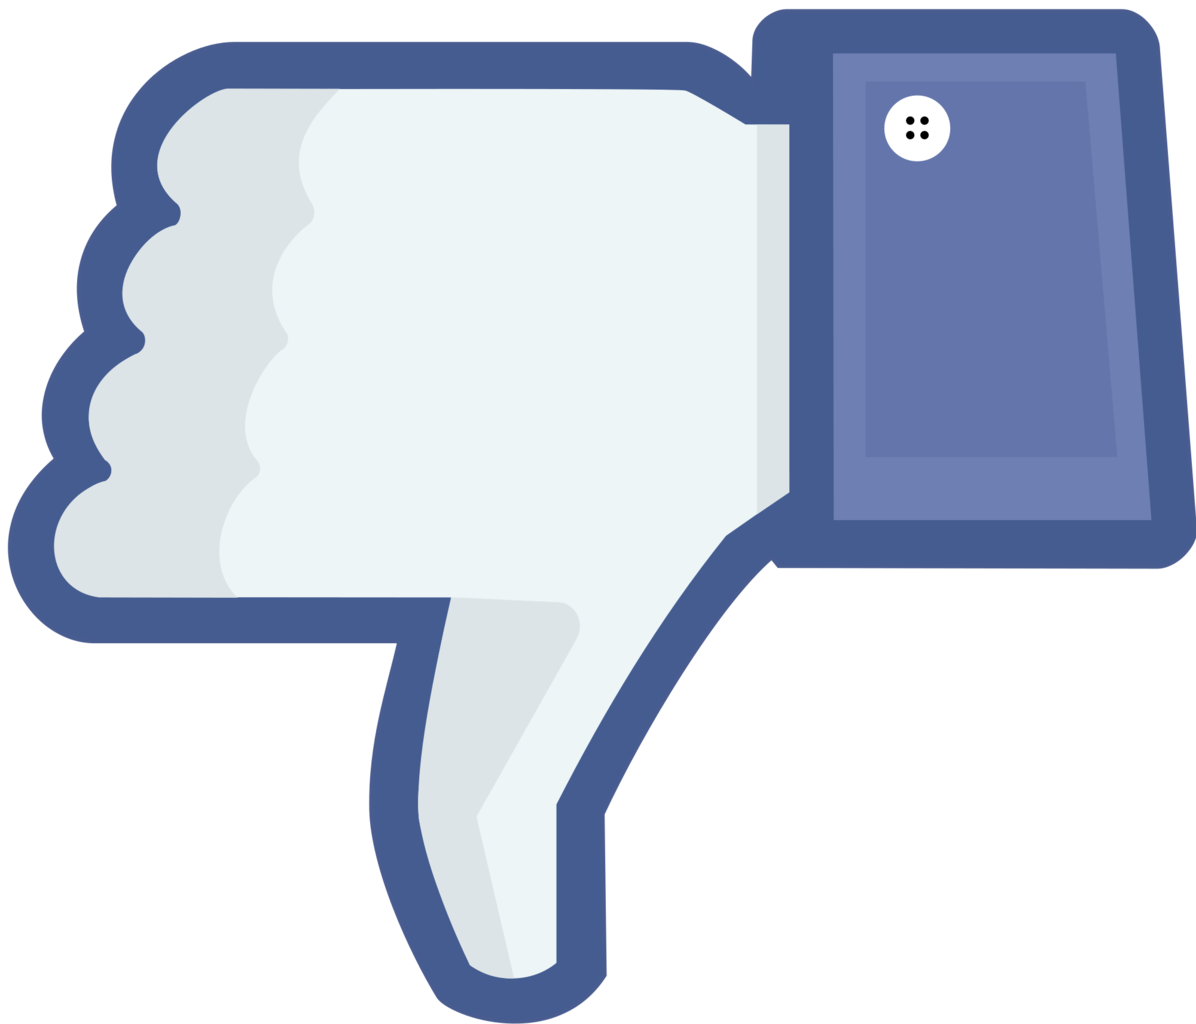 Facebook is bad for you - and giving up using it will make you happier | by  Akshat Rathi | I. M. H. O. | Medium